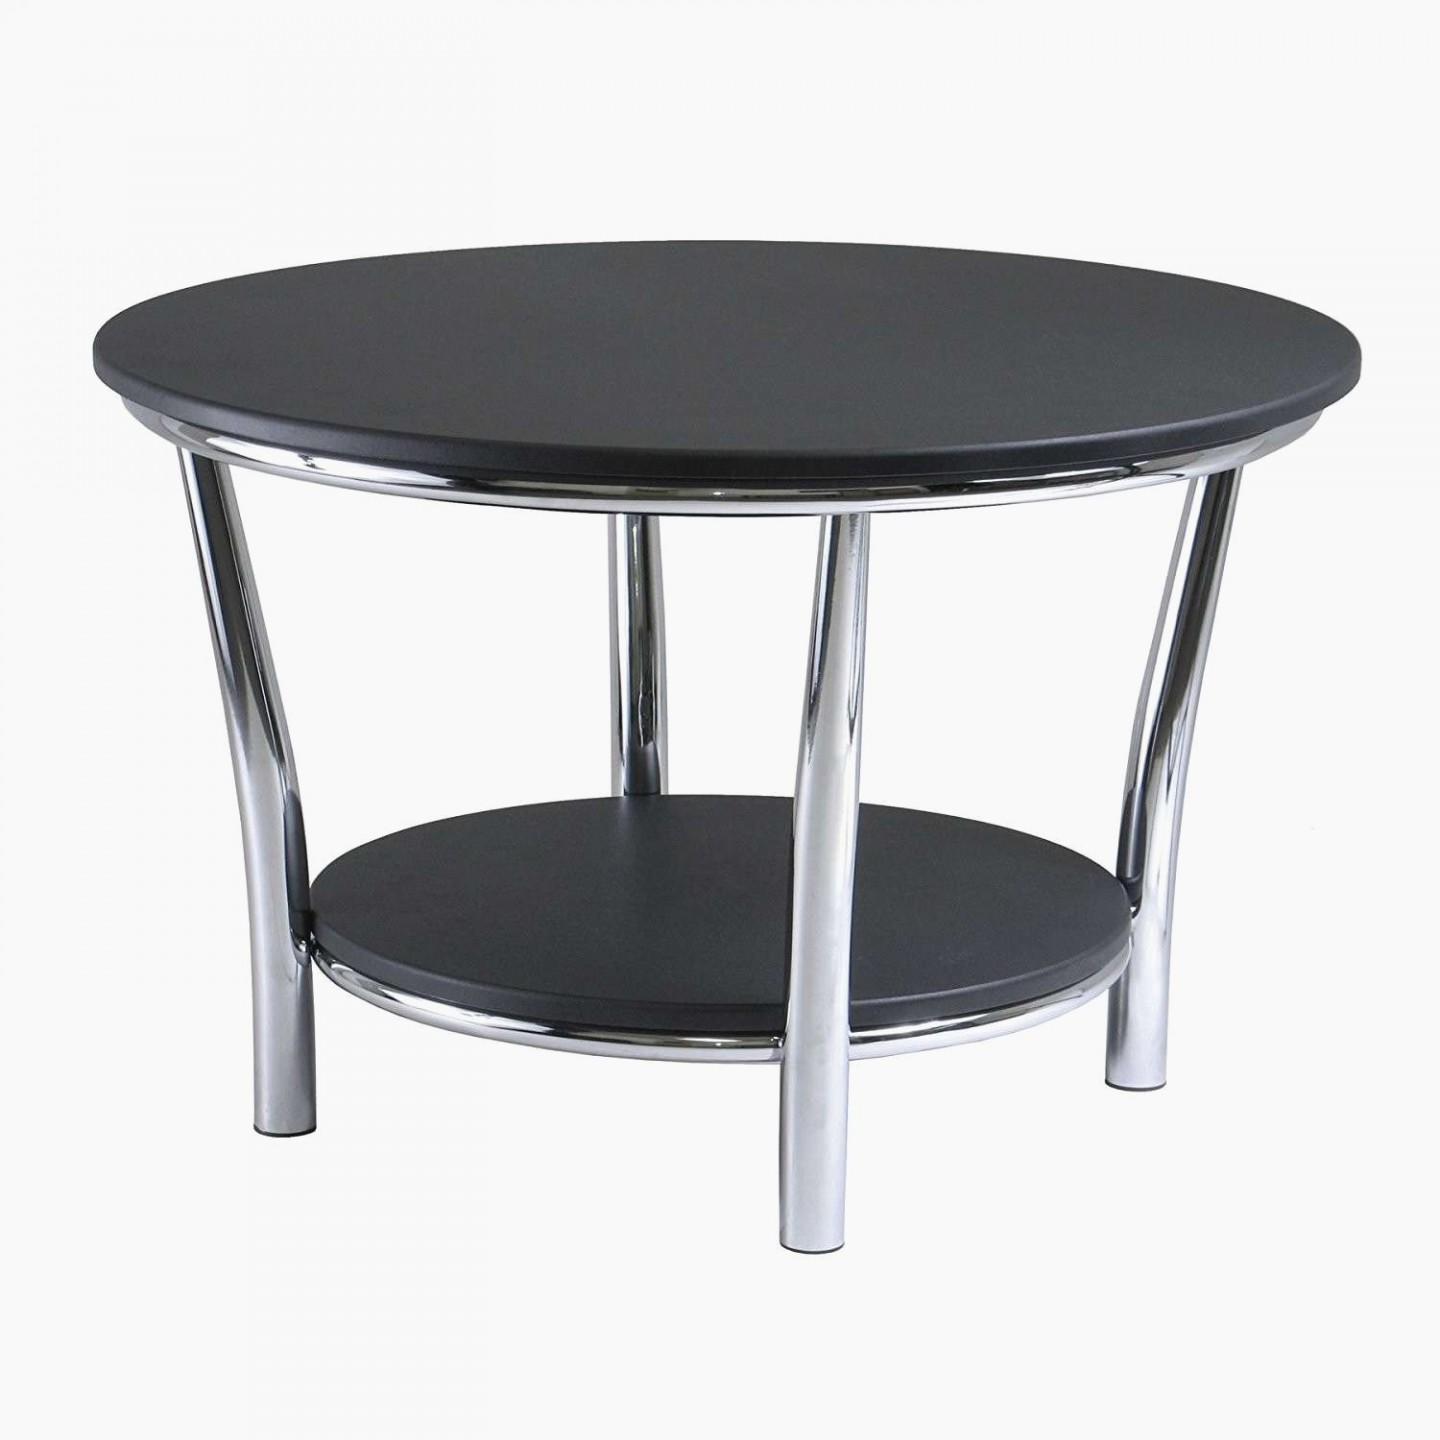 moroccan round coffee table unique mosaic outdoor side lovely grey with storage new elegant mcm furniture high gloss and yellow rug mirrored box threshold accent nightstand under